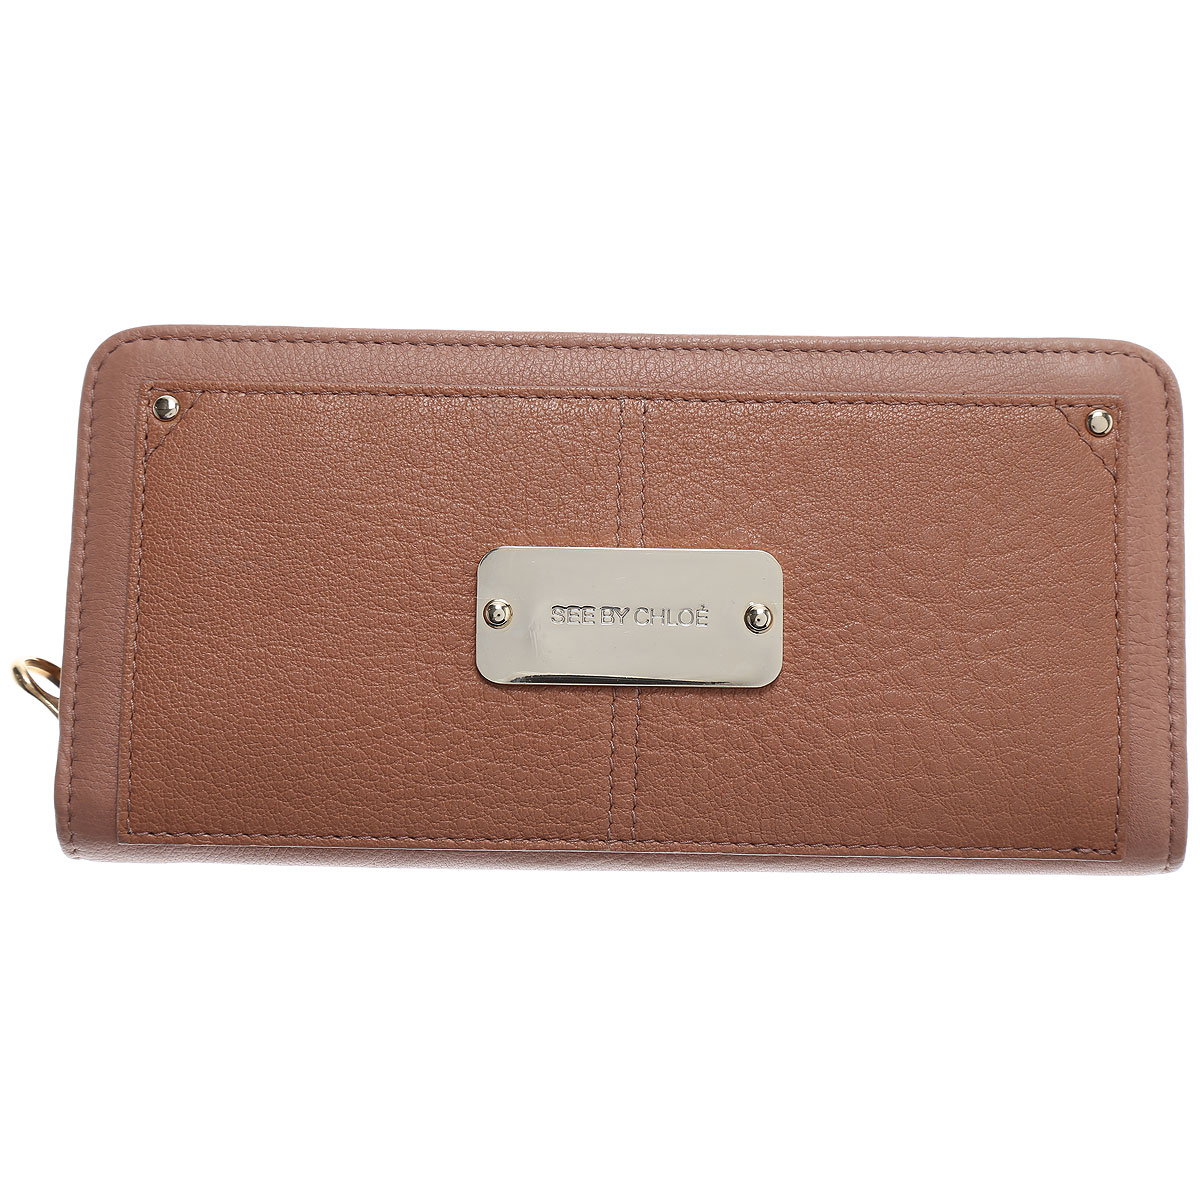 Chloe Wallet for Women On Sale in Outlet, Natural, Leather, 2019